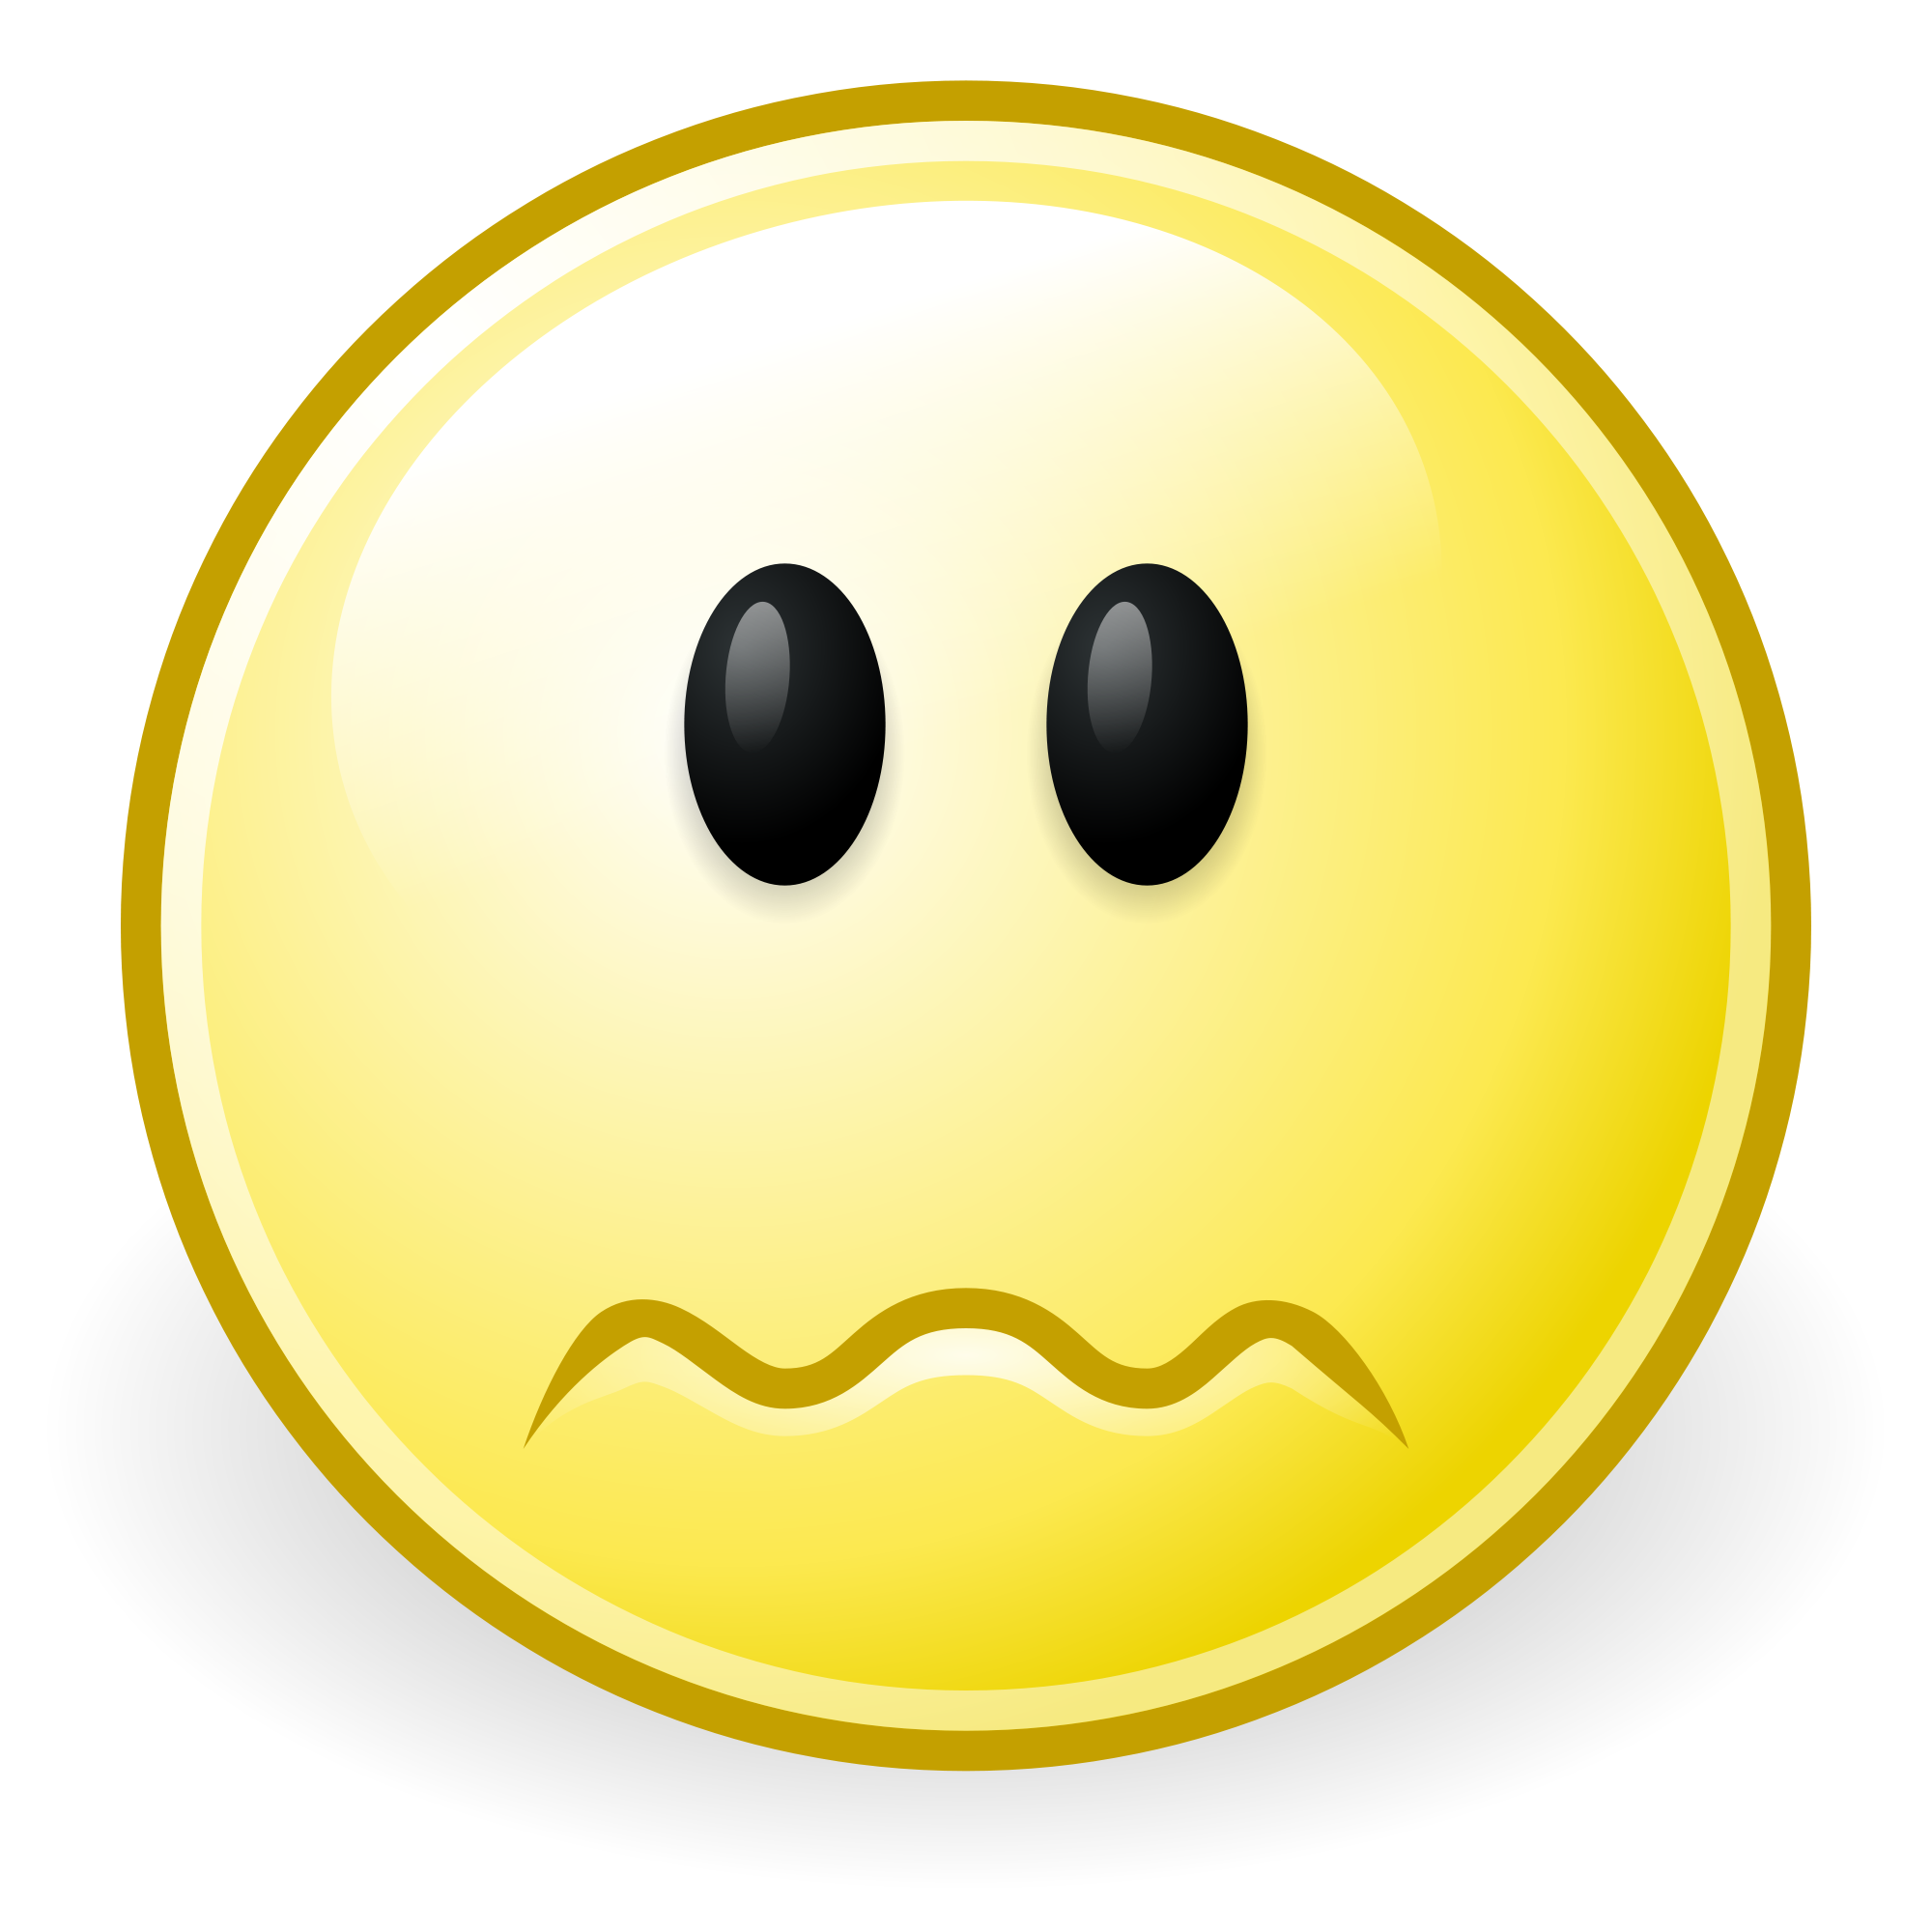 File:Gnome-face-worried.svg - Wikimedia Commons